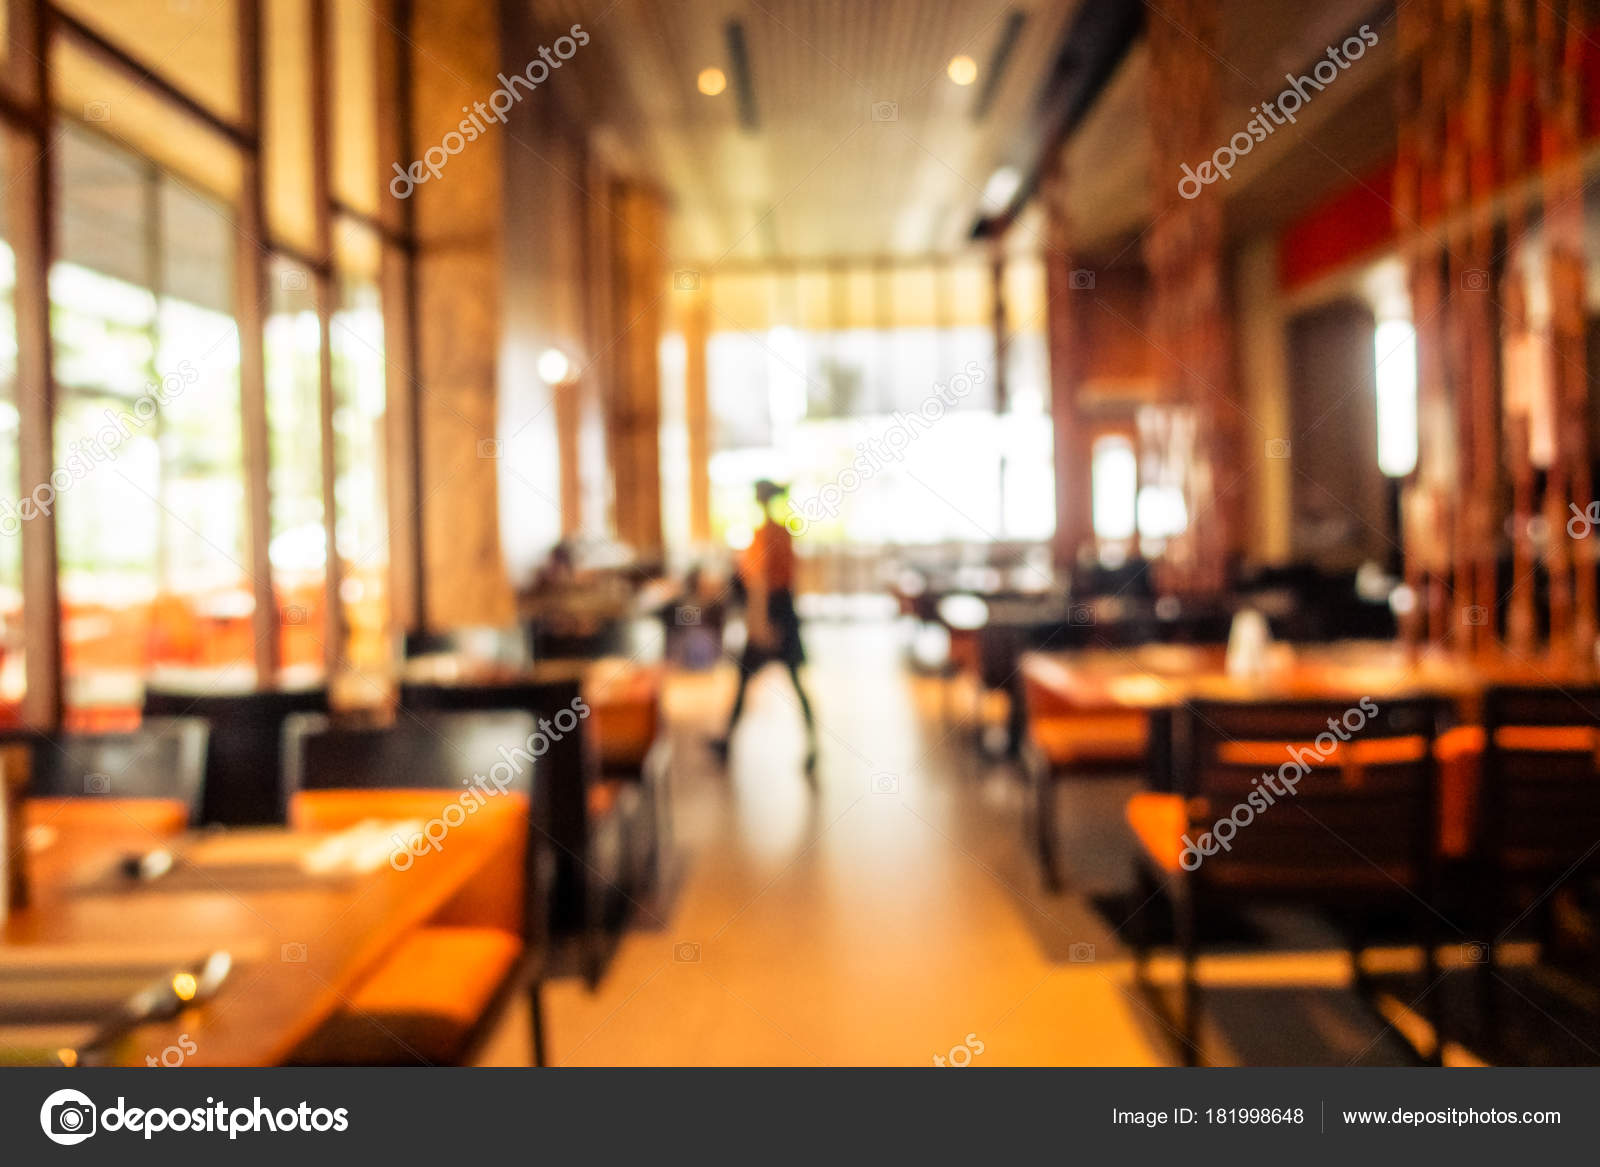 Abstract Blur Restaurant Coffee Shop Cafe Interior Background Vintage Filter Stock Photo C Mrsiraphol 181998648